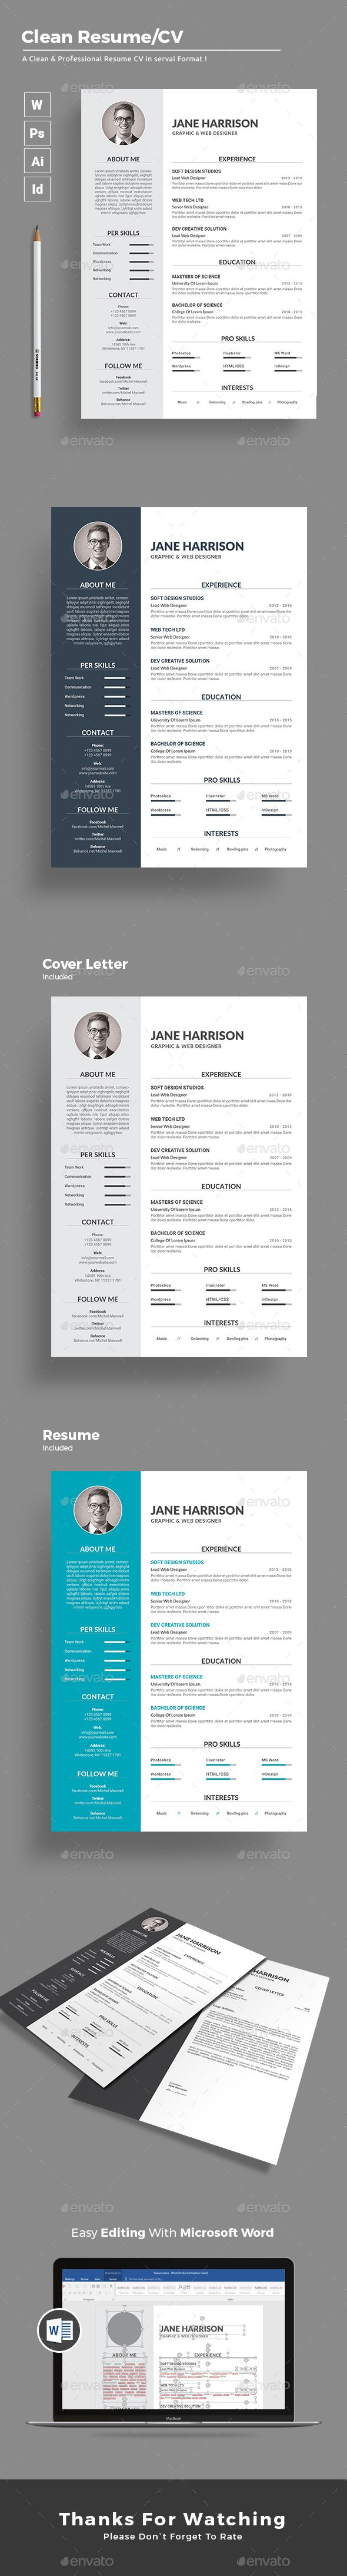 folding a resume for mailing